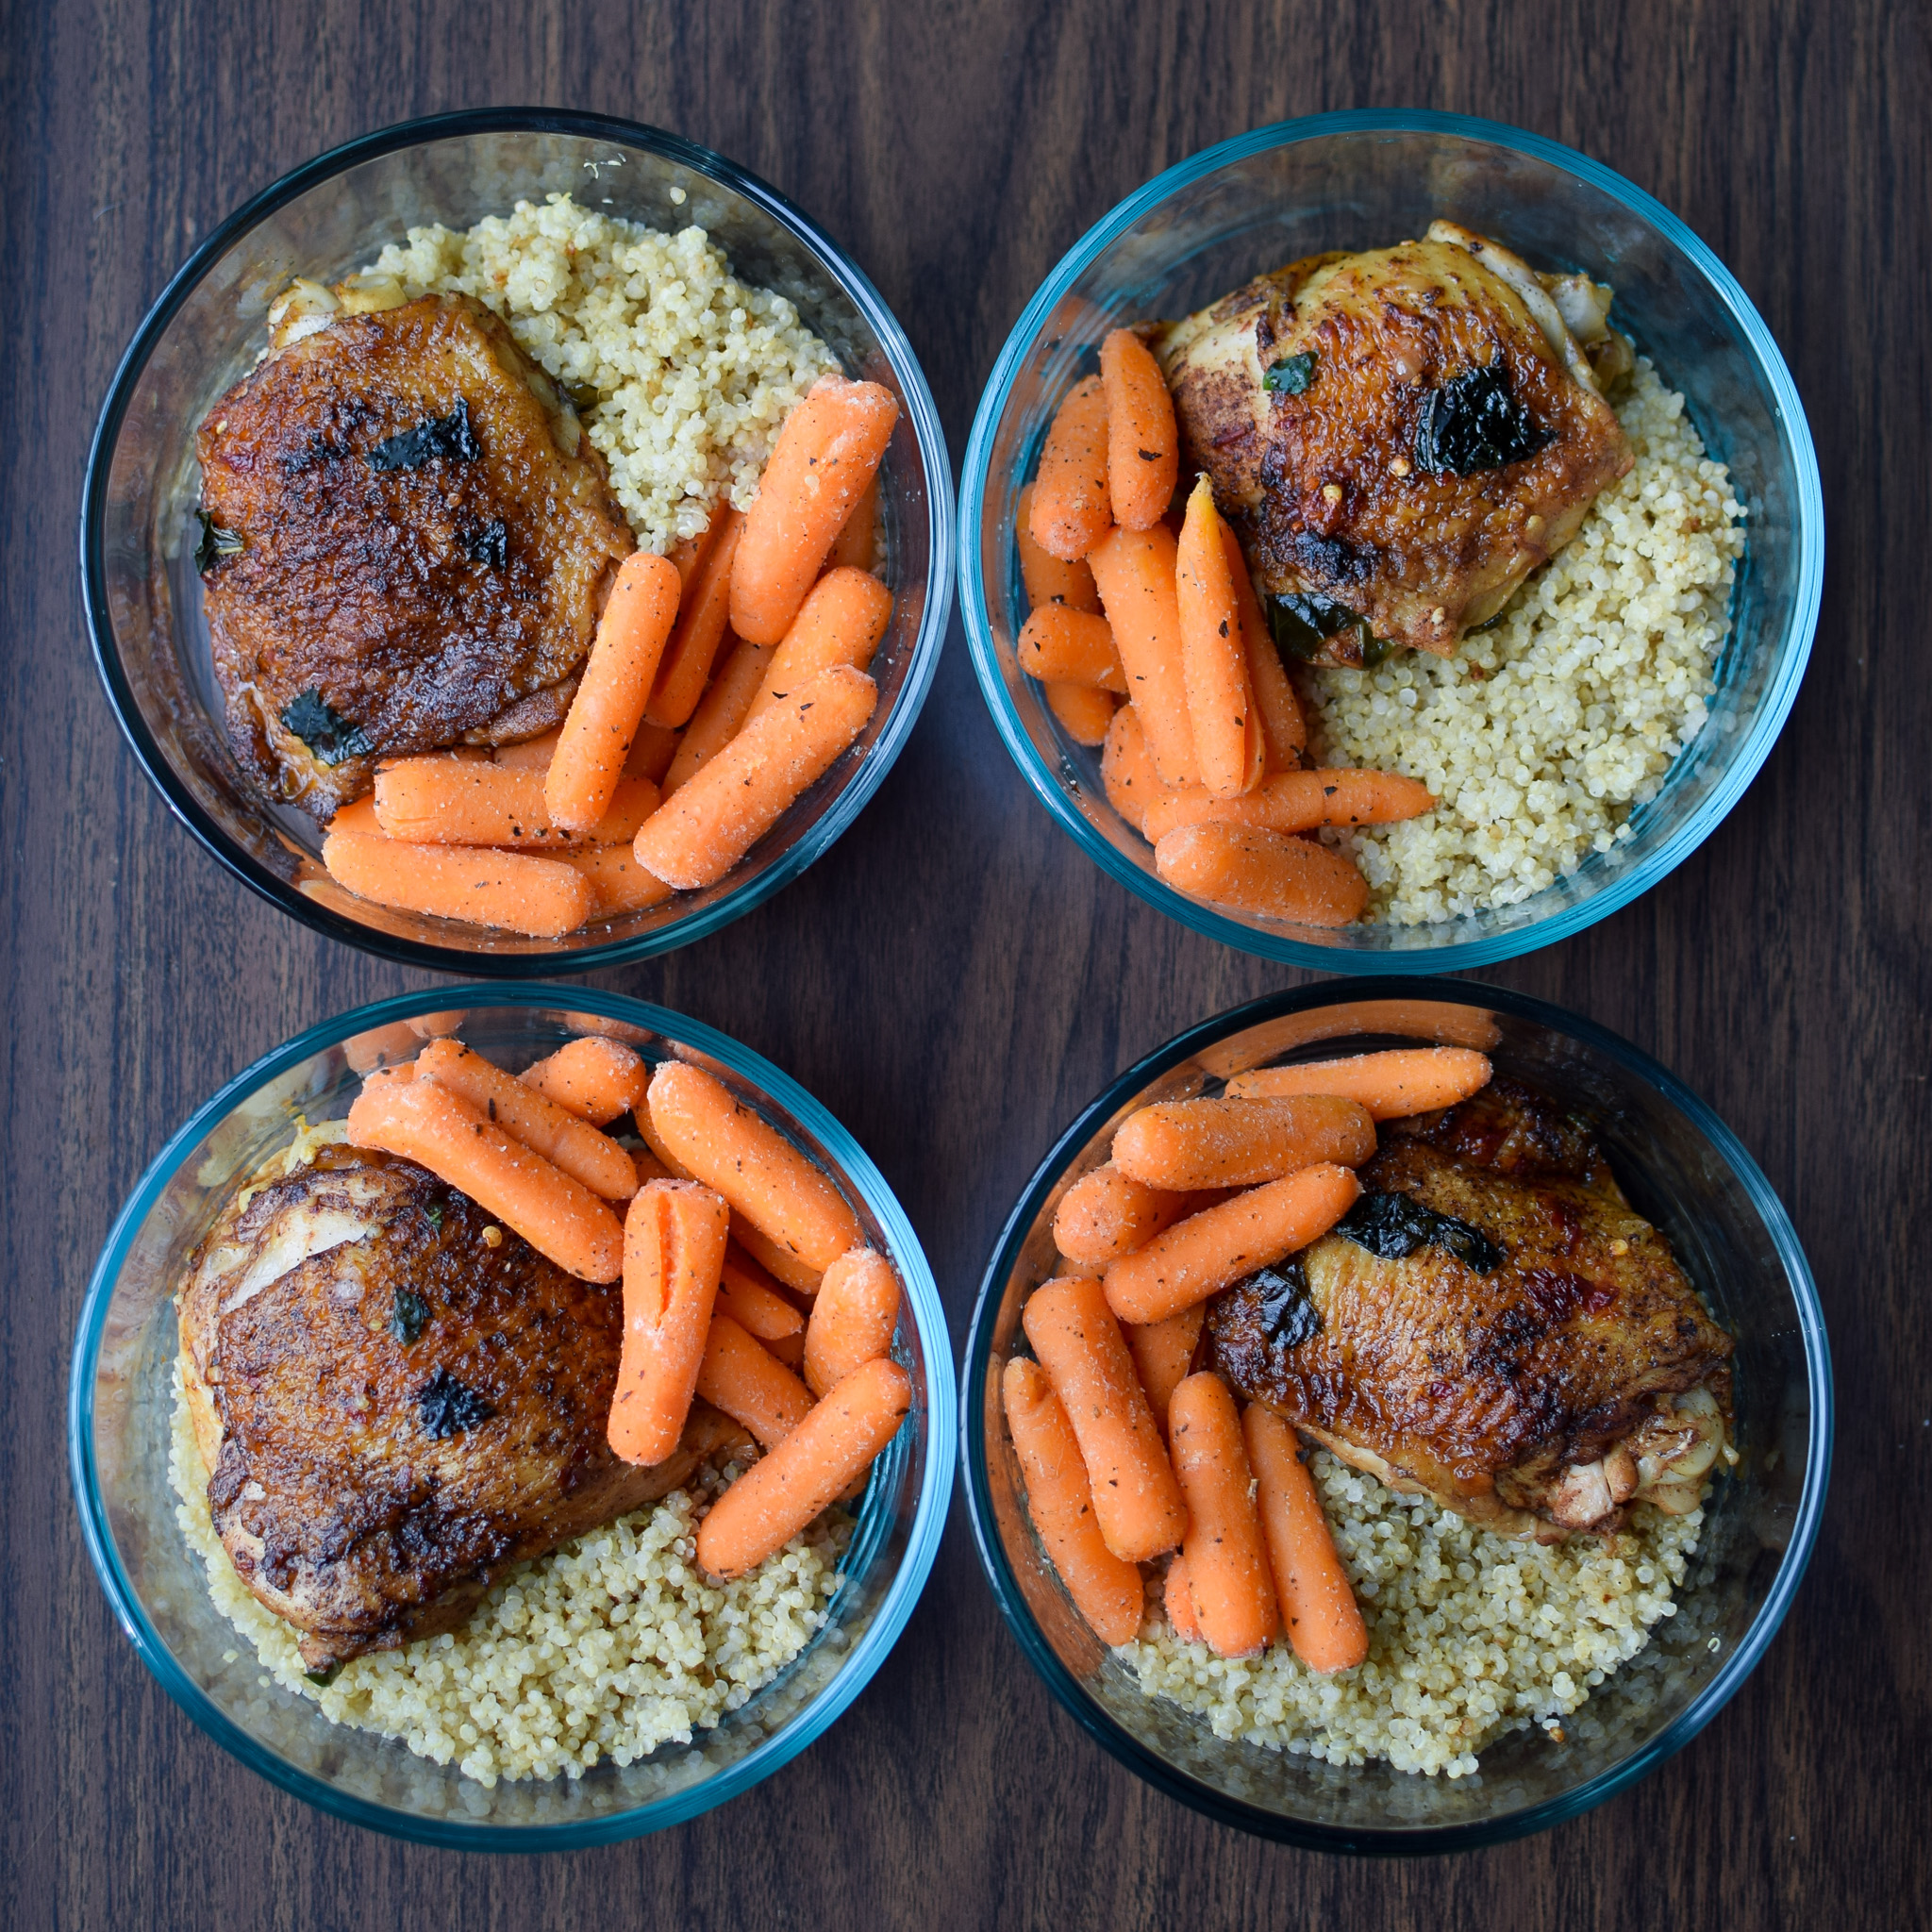 Sunday Meal Prep for October 9th, 2016 - Sunday Meal Prep Steps, shopping list, macro counts and more! - ProjectMealPlan.com